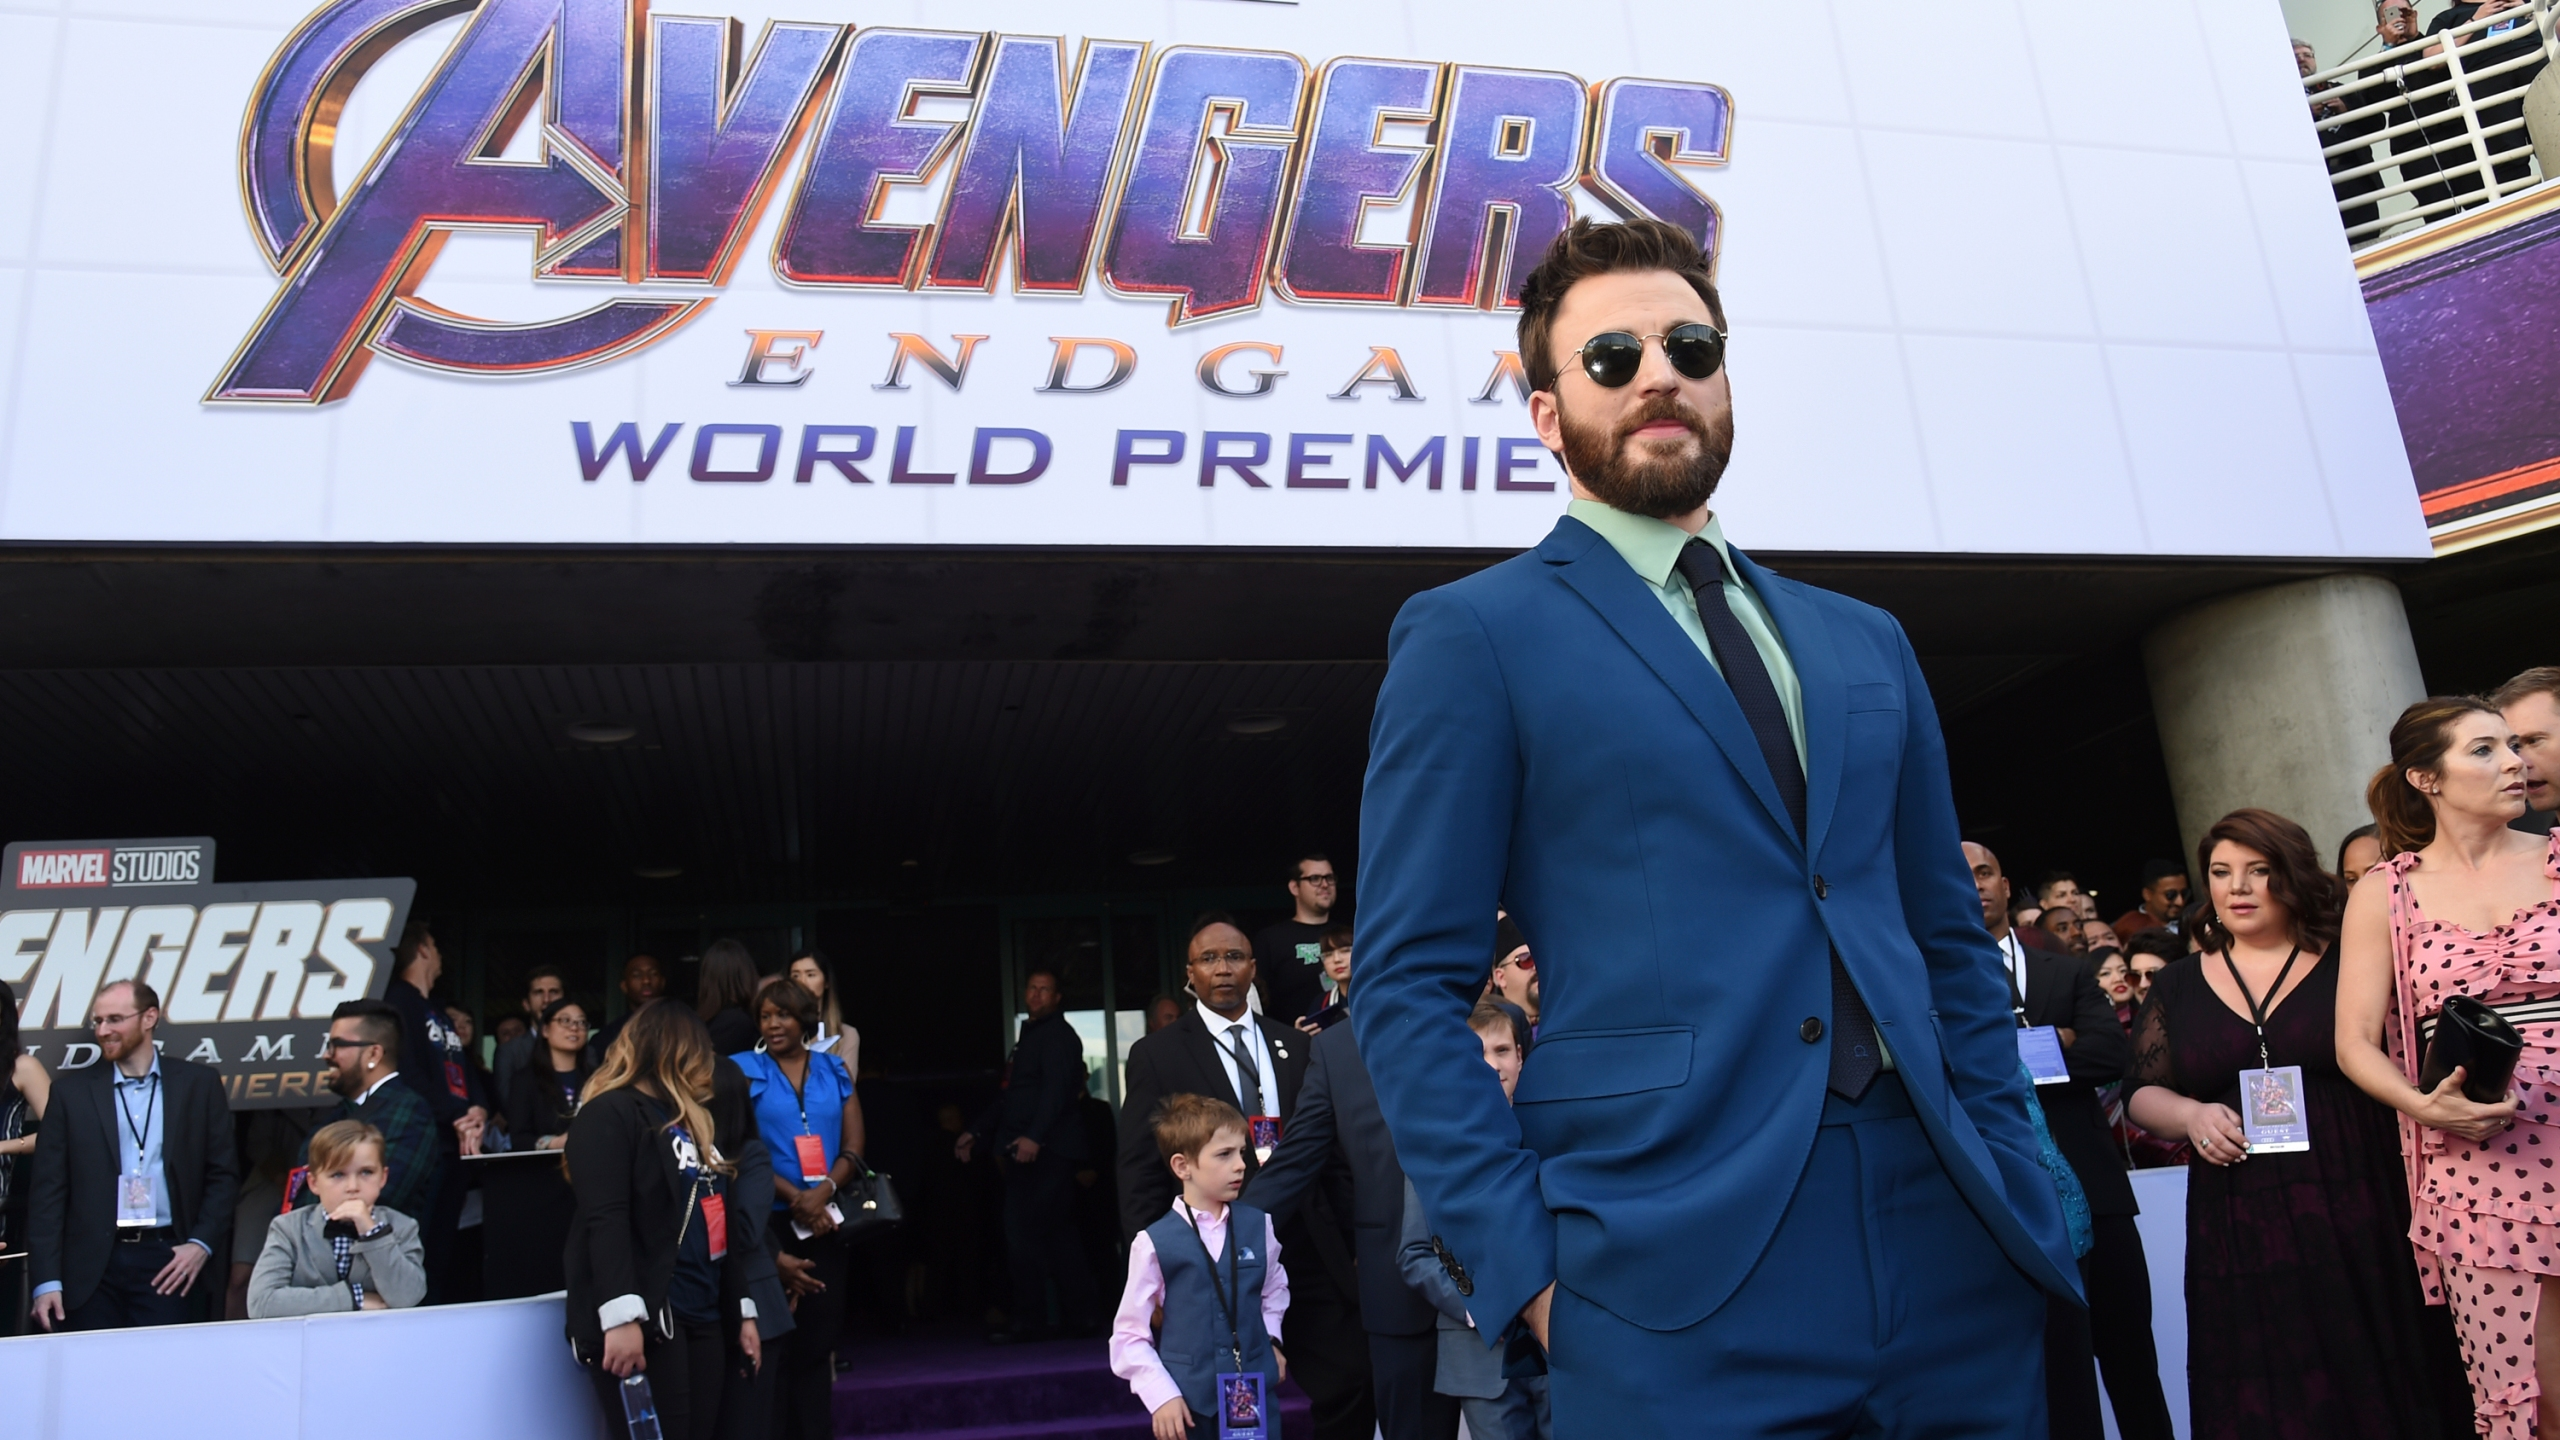 LA_Premiere_of__Avengers__Endgame__-_Red_Carpet_23577-159532-159532.jpg57991888